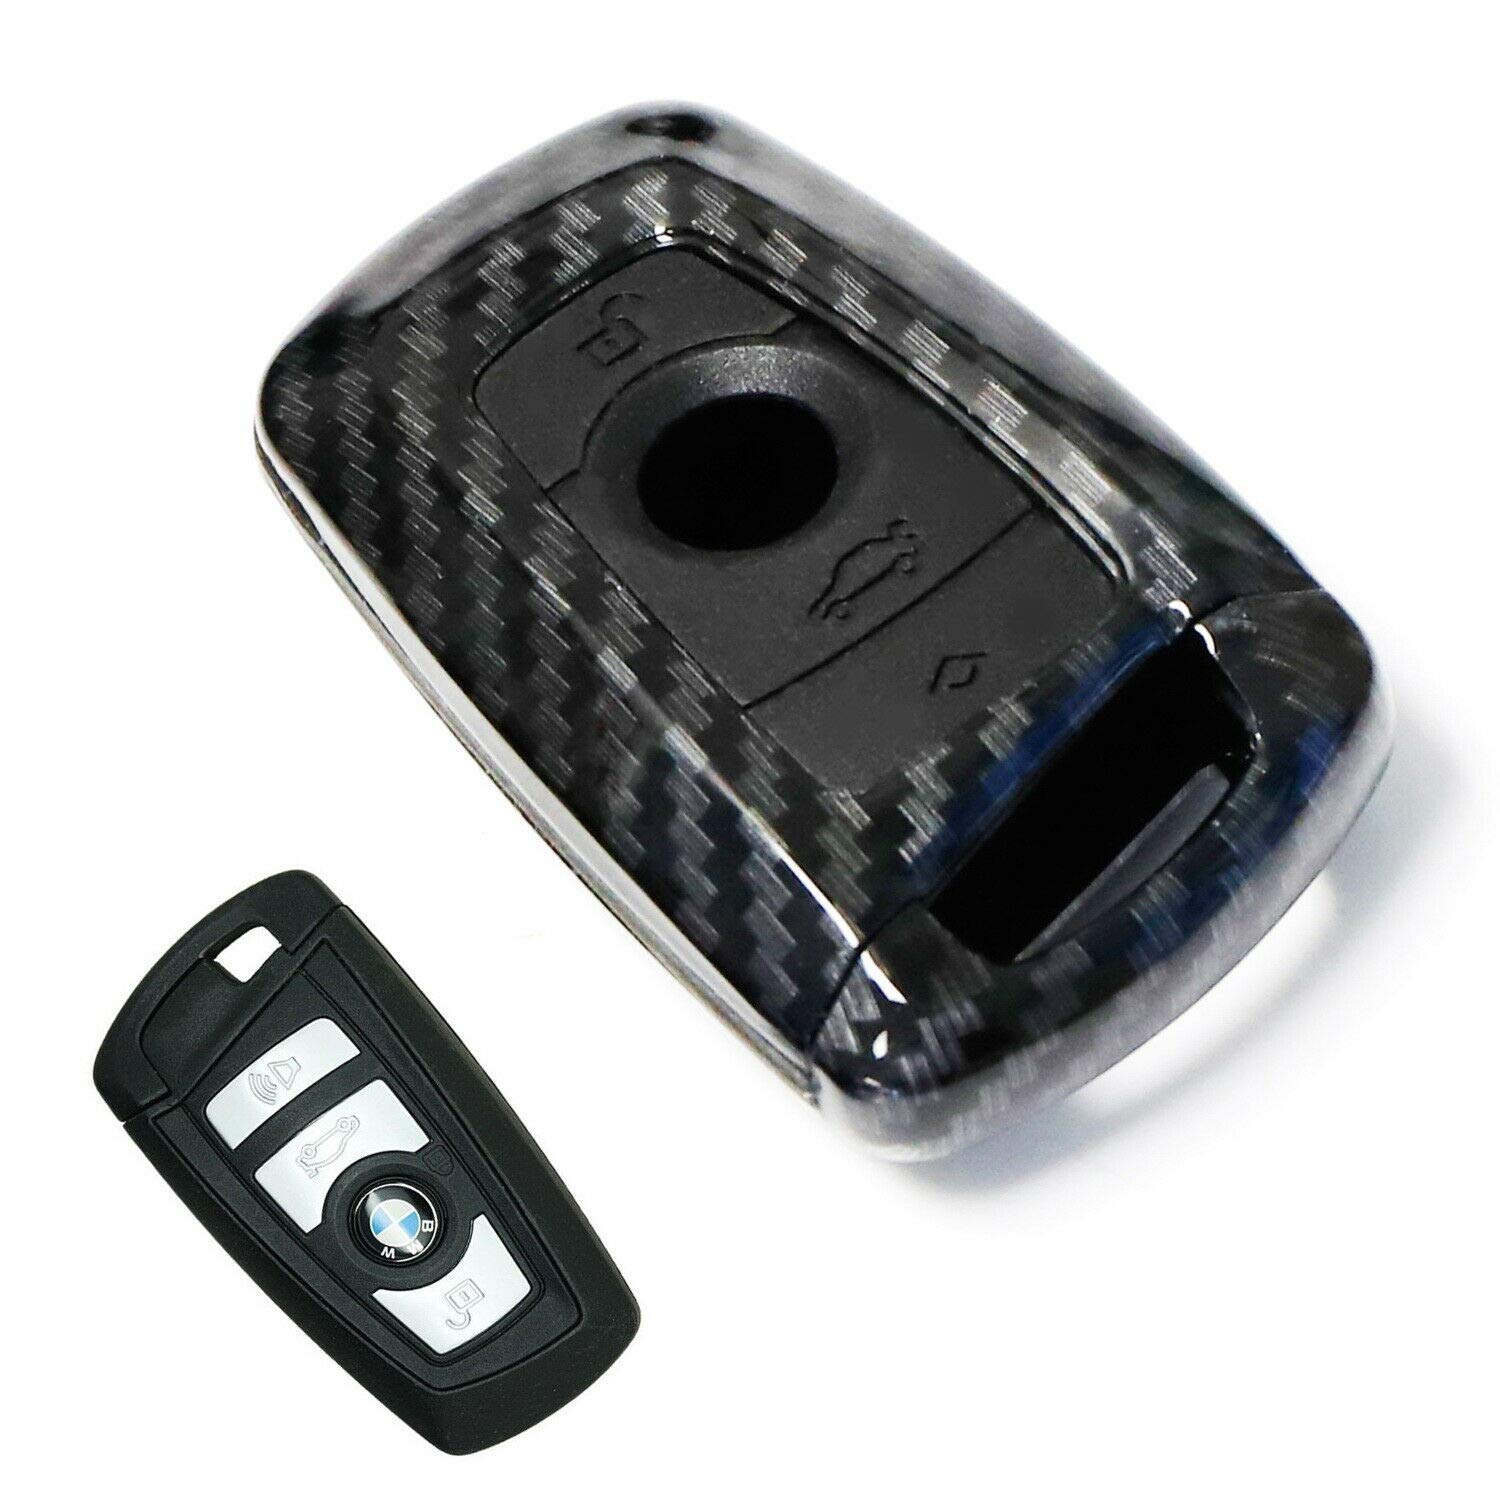 iJDMTOY (1) Carbon Fiber Pattern Smart Key Fob Shell w/Black Silicone Key Button Skin Compatible With BMW 2 3 4 5 6 7 Series X1 X2 X3 X4 (Fit Most Fxx Chassis BMWs)